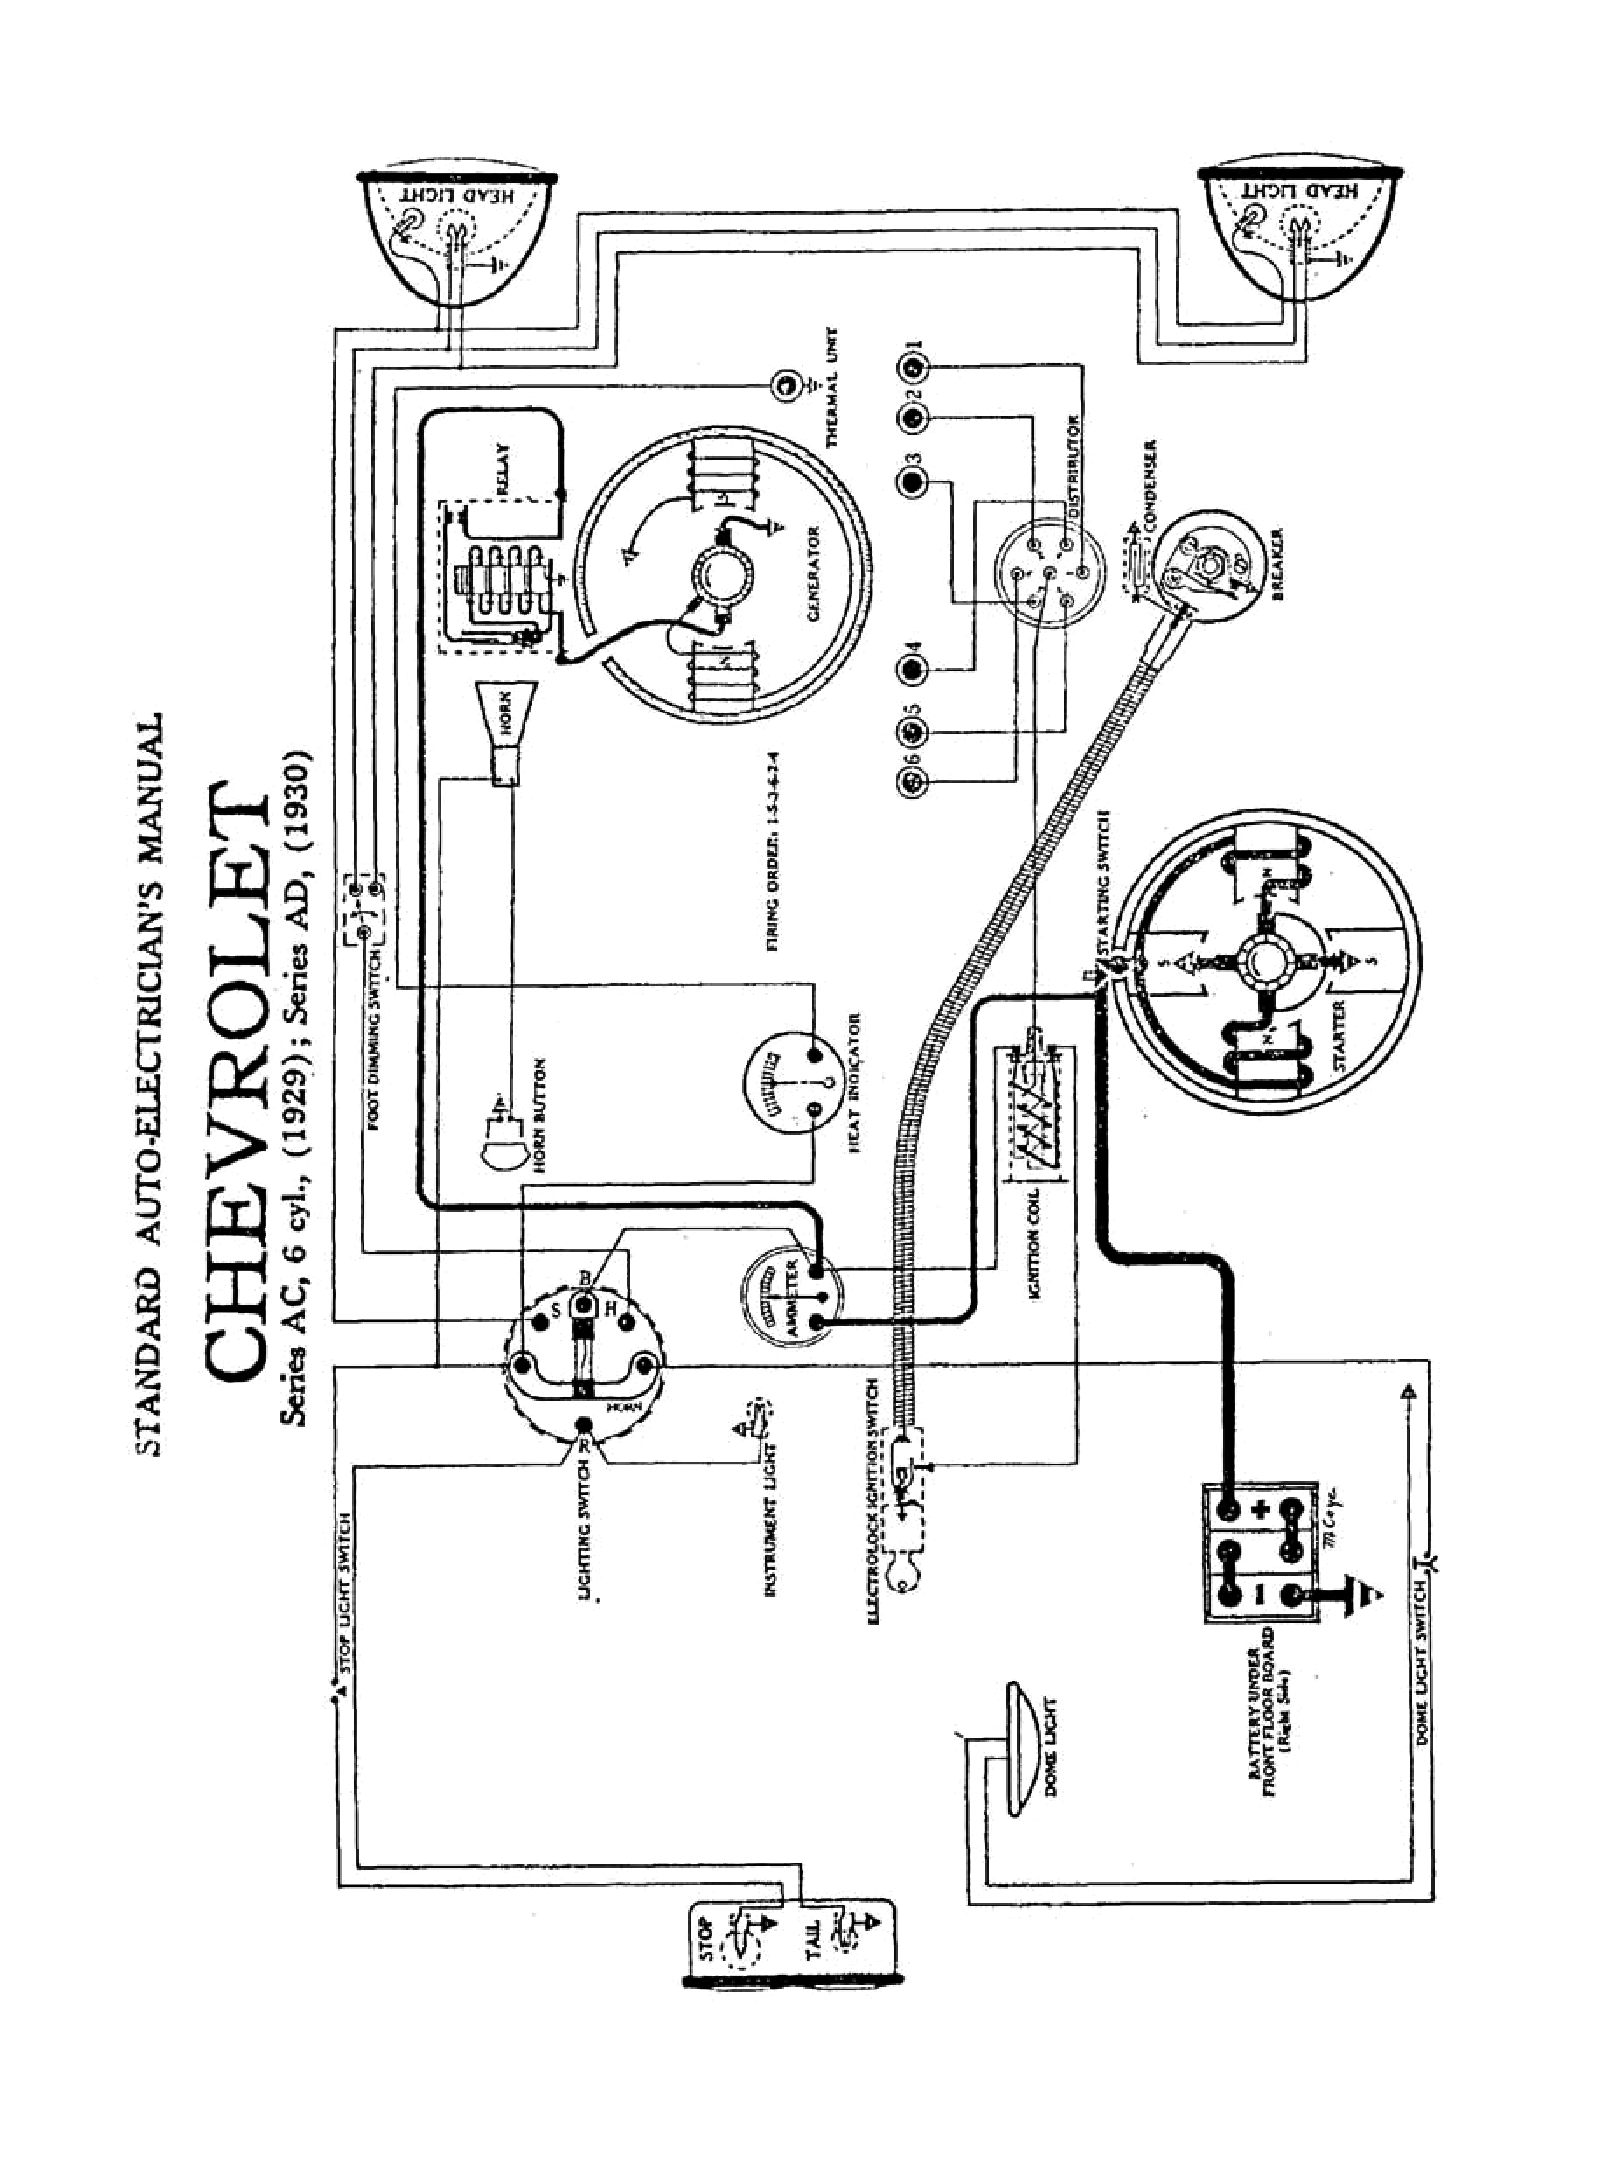 Wiring Diagram For 1948 49 Chevrolet Truck Wiring Diagram 1952 Ford Truck  Wiring Diagram 1949 Ford F1 Wiring Diagram